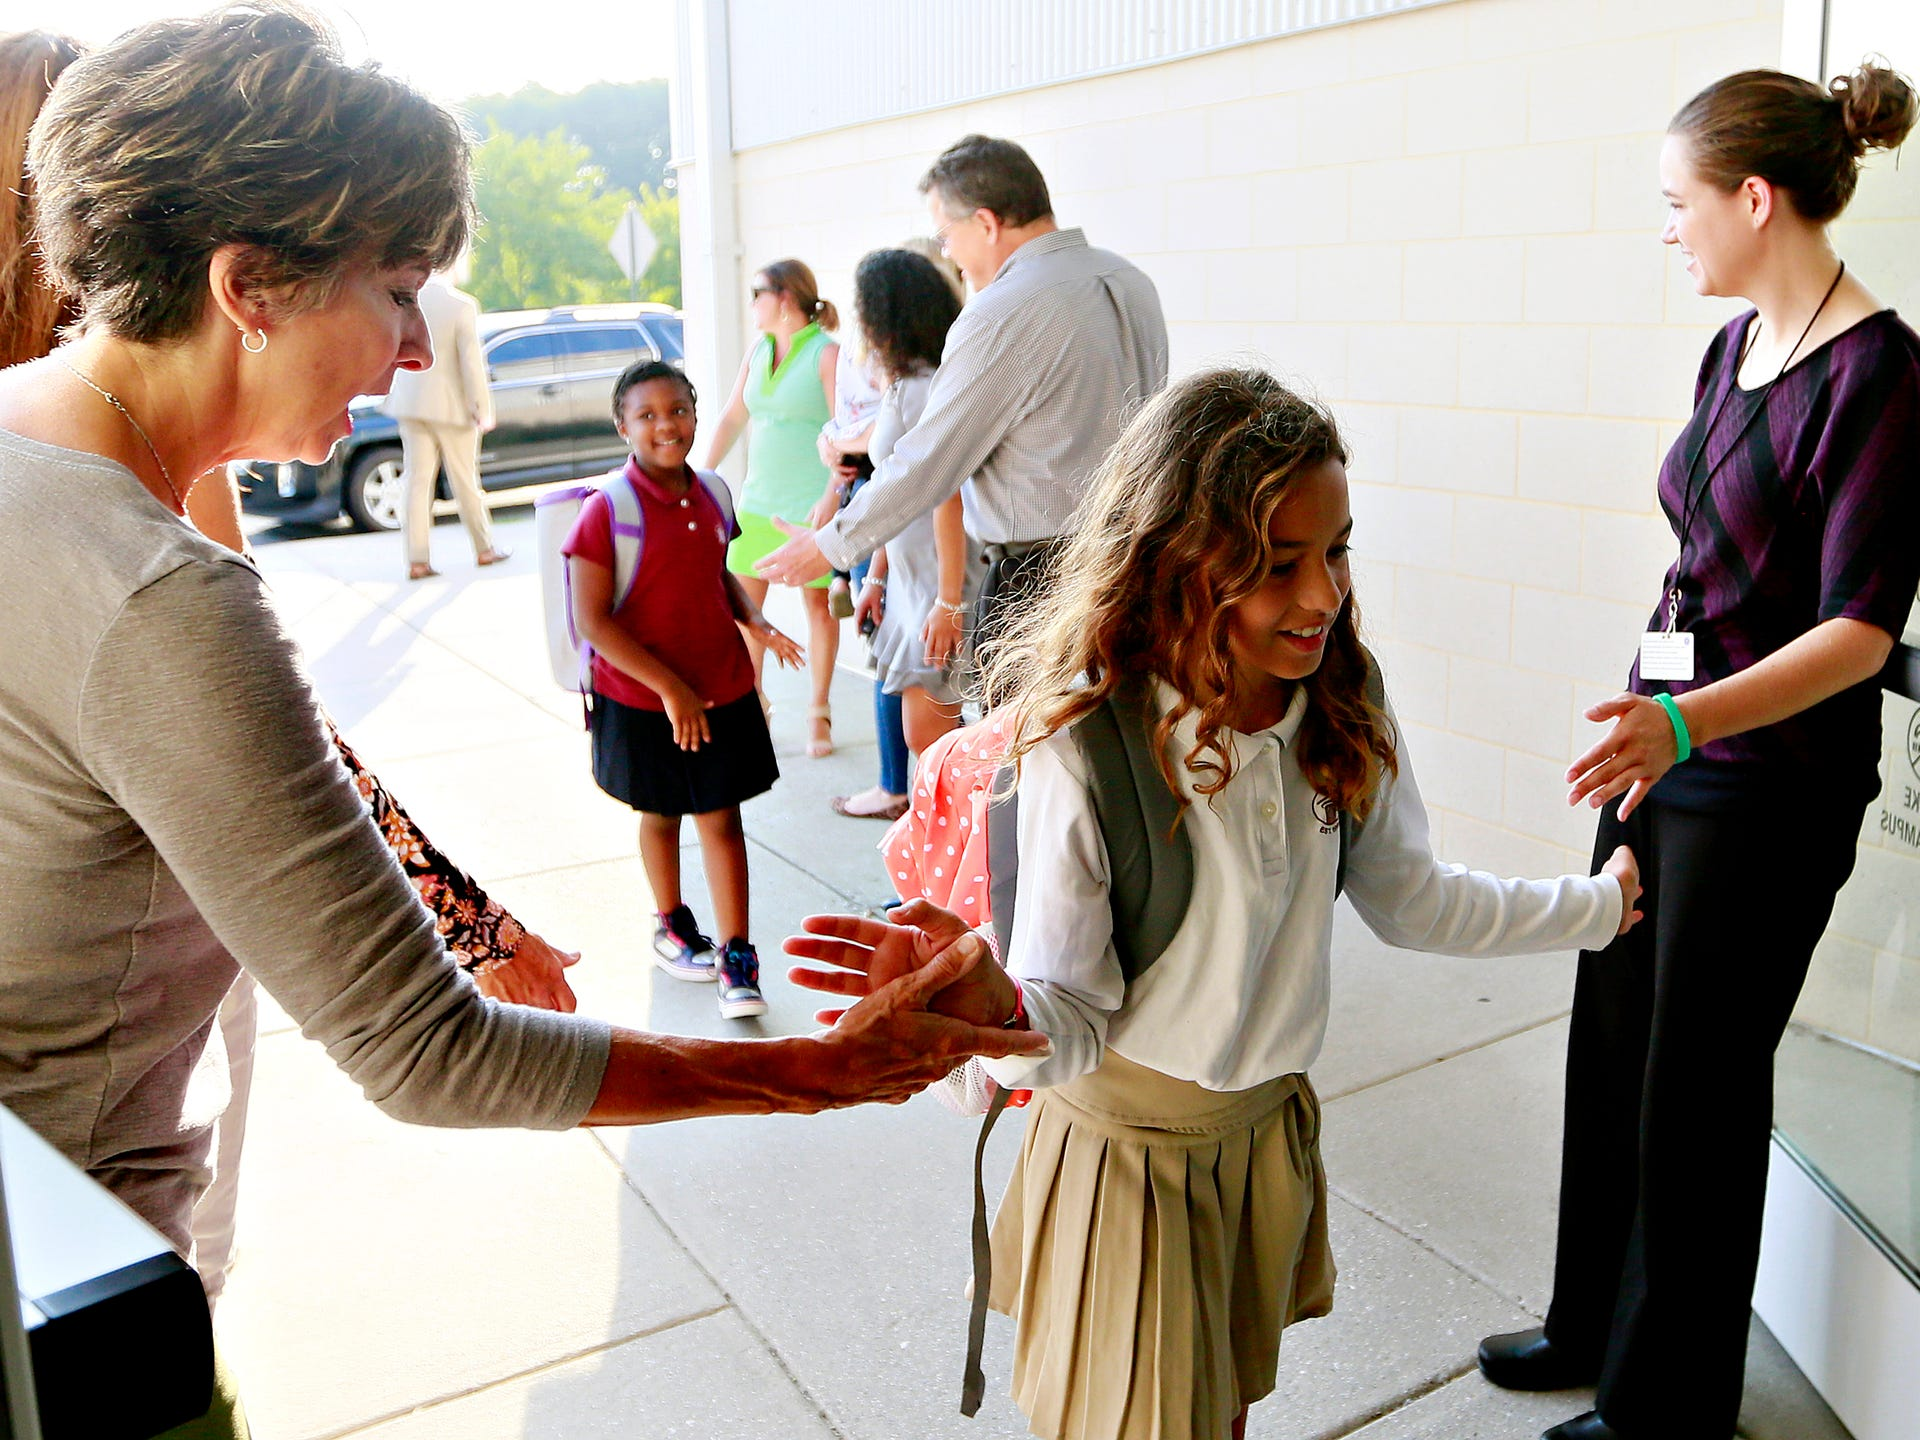 PHOTOS: First day of school at Logos Academy